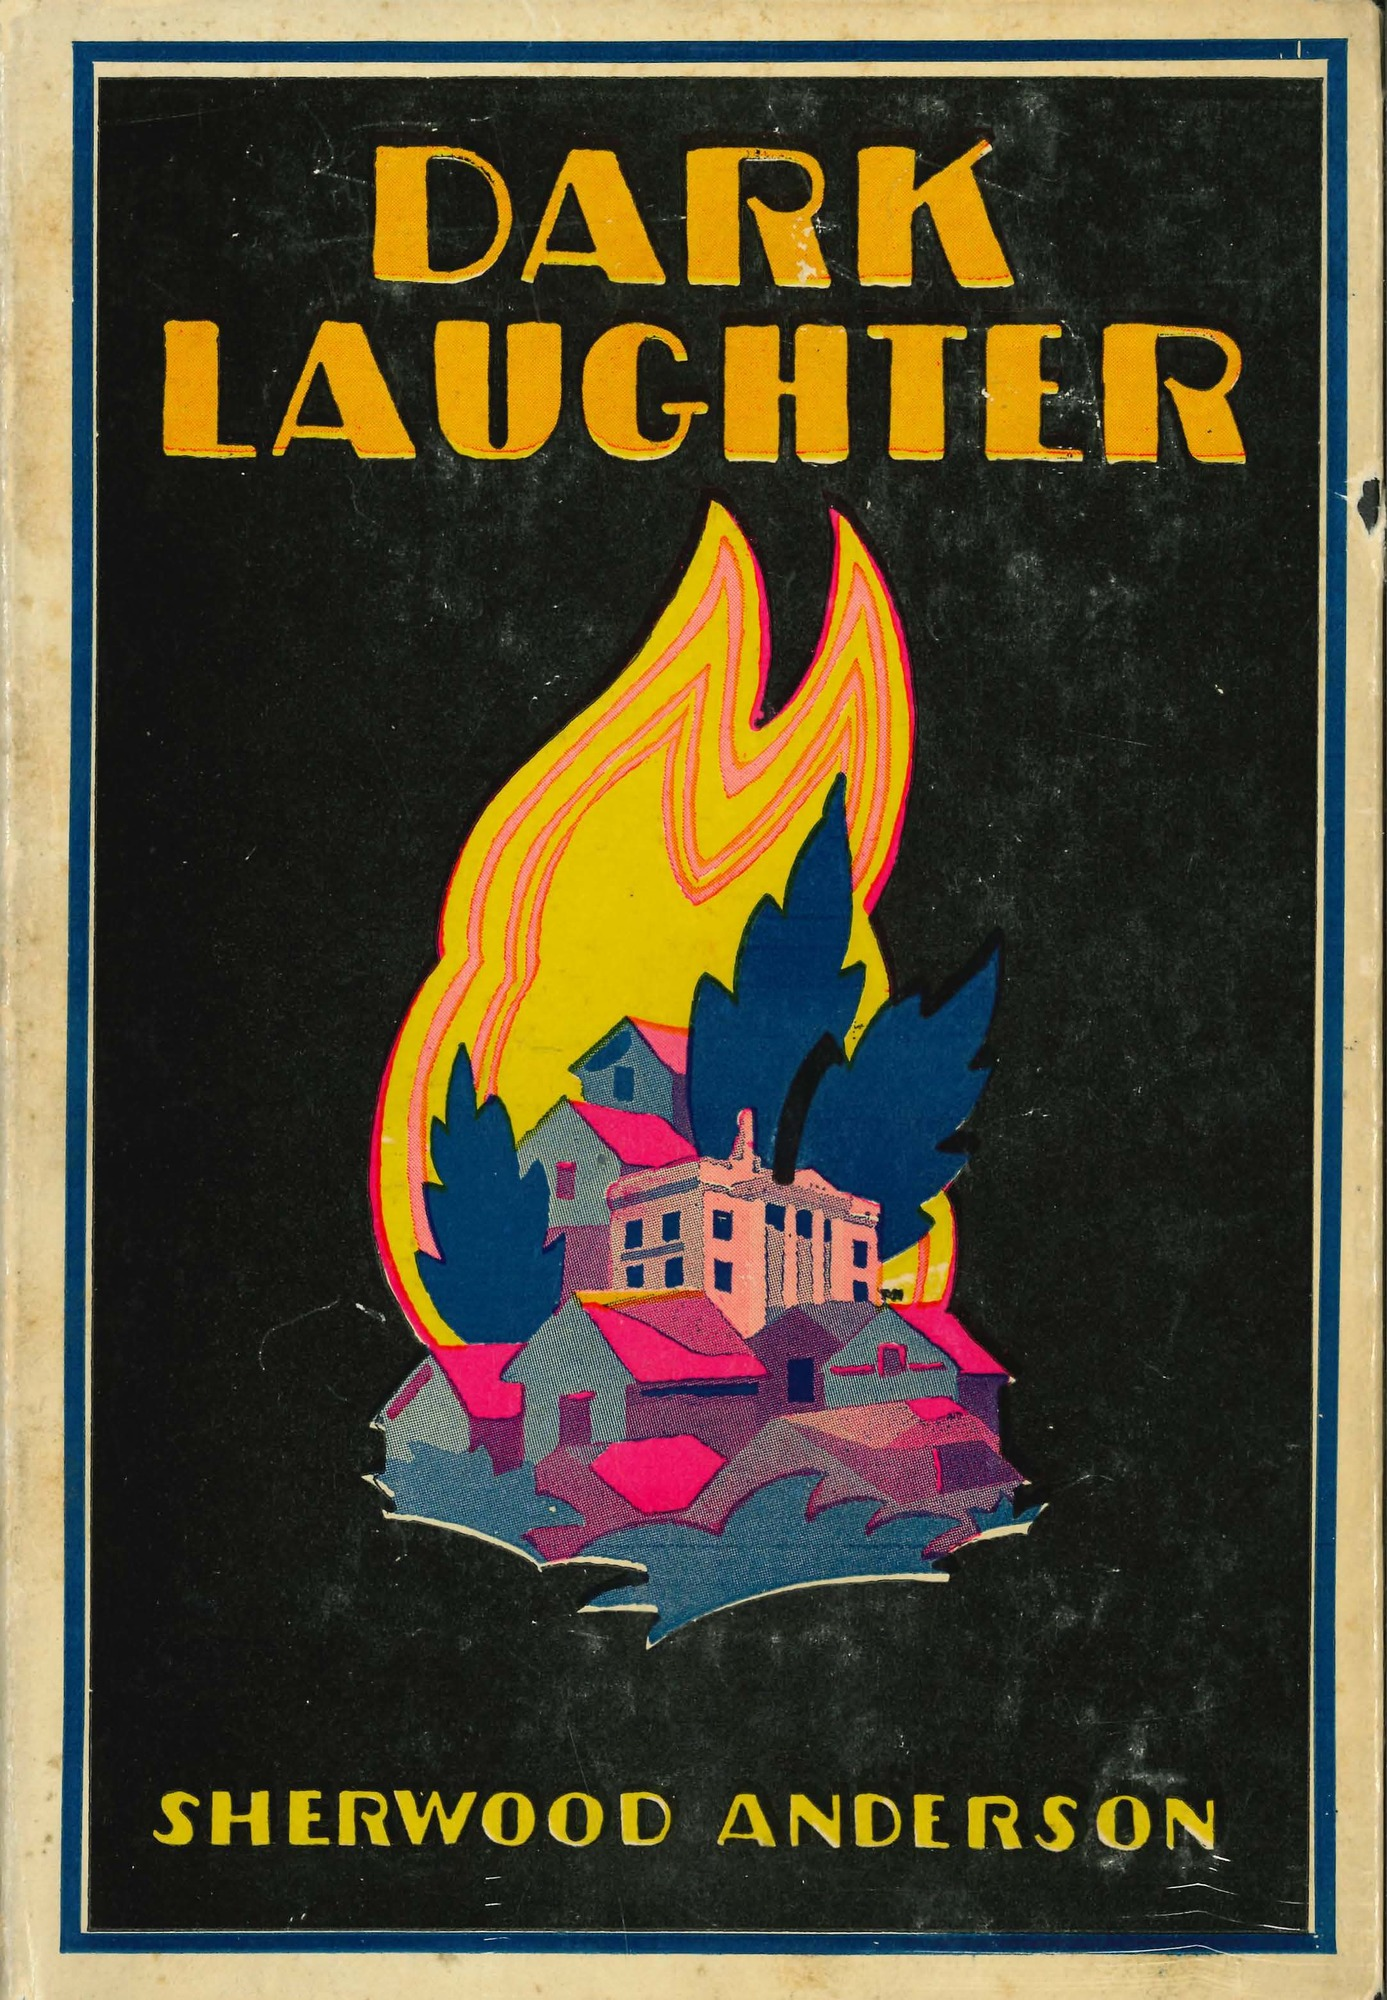 DarkLaughter_1925.jpg